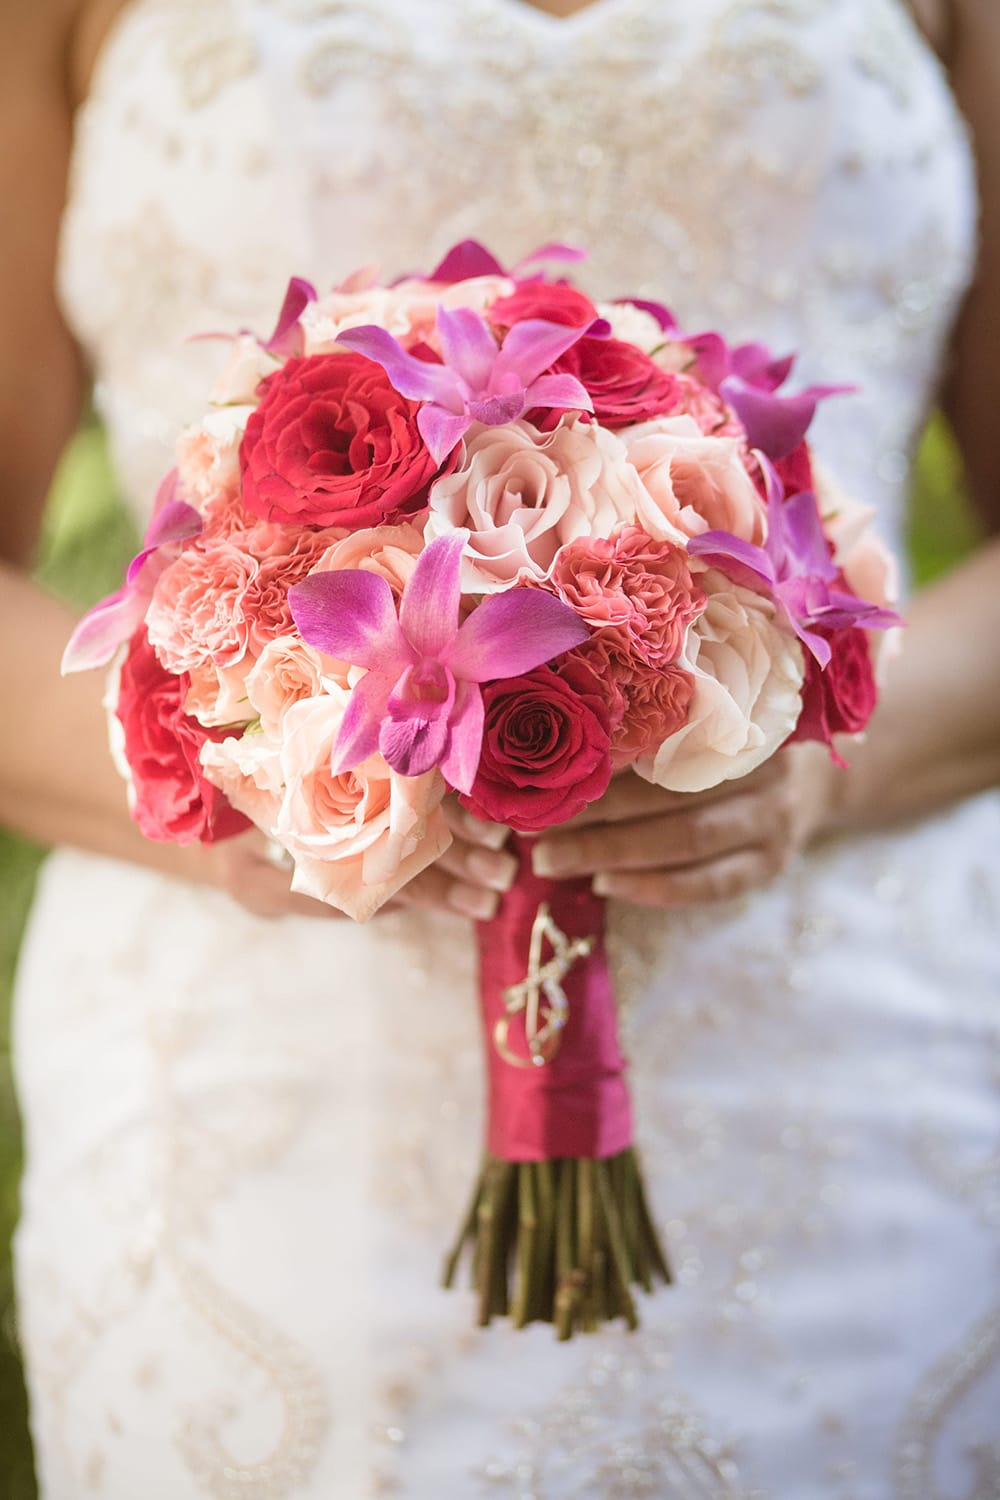 Vibrant pink wedding bouquet for tropical beach ceremony by Adventure Weddings' destination wedding florist